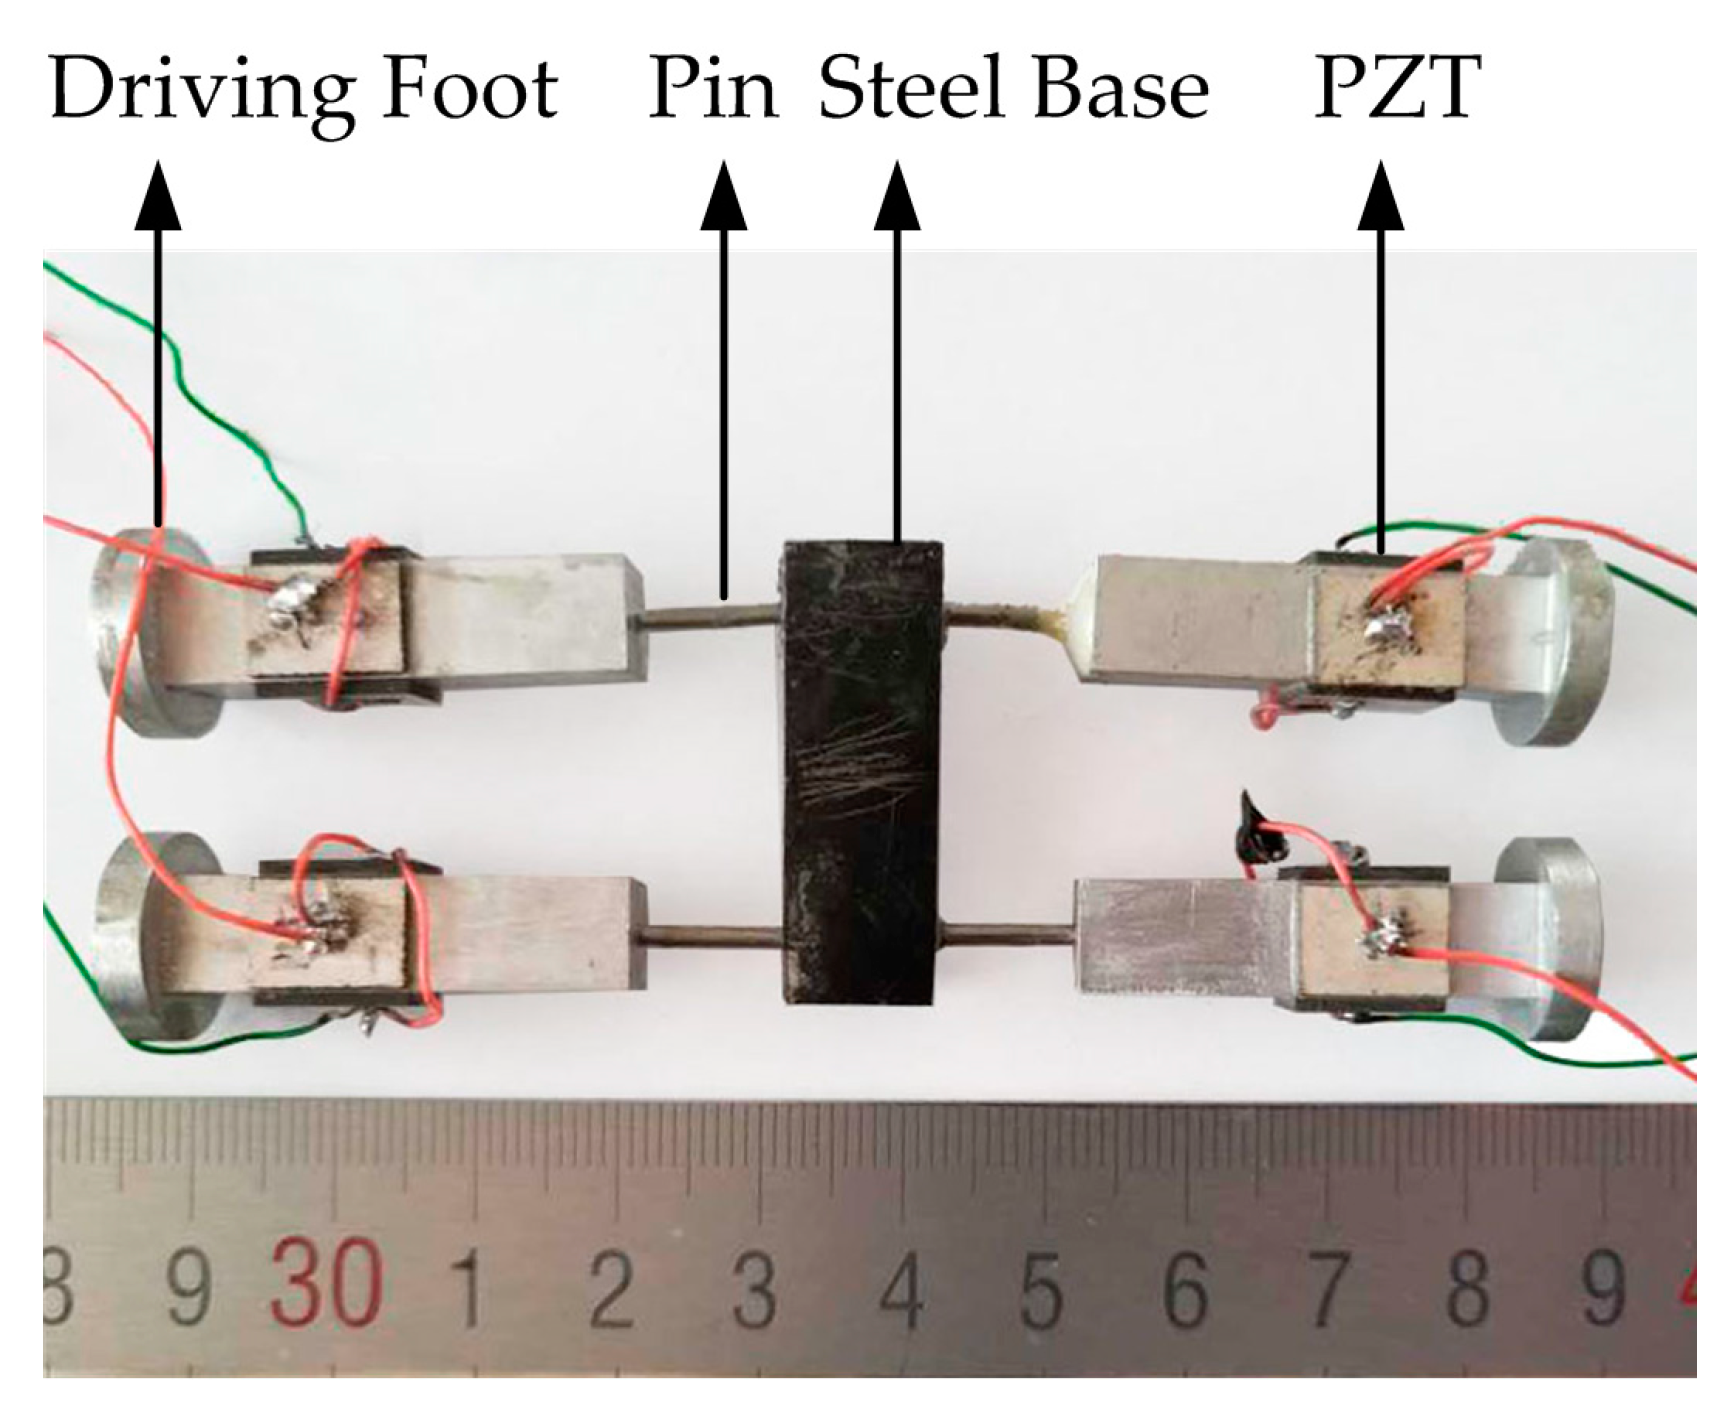 Sensors Free Full Text A Quadruped Micro Robot Based On Piezo Driver Circuit No